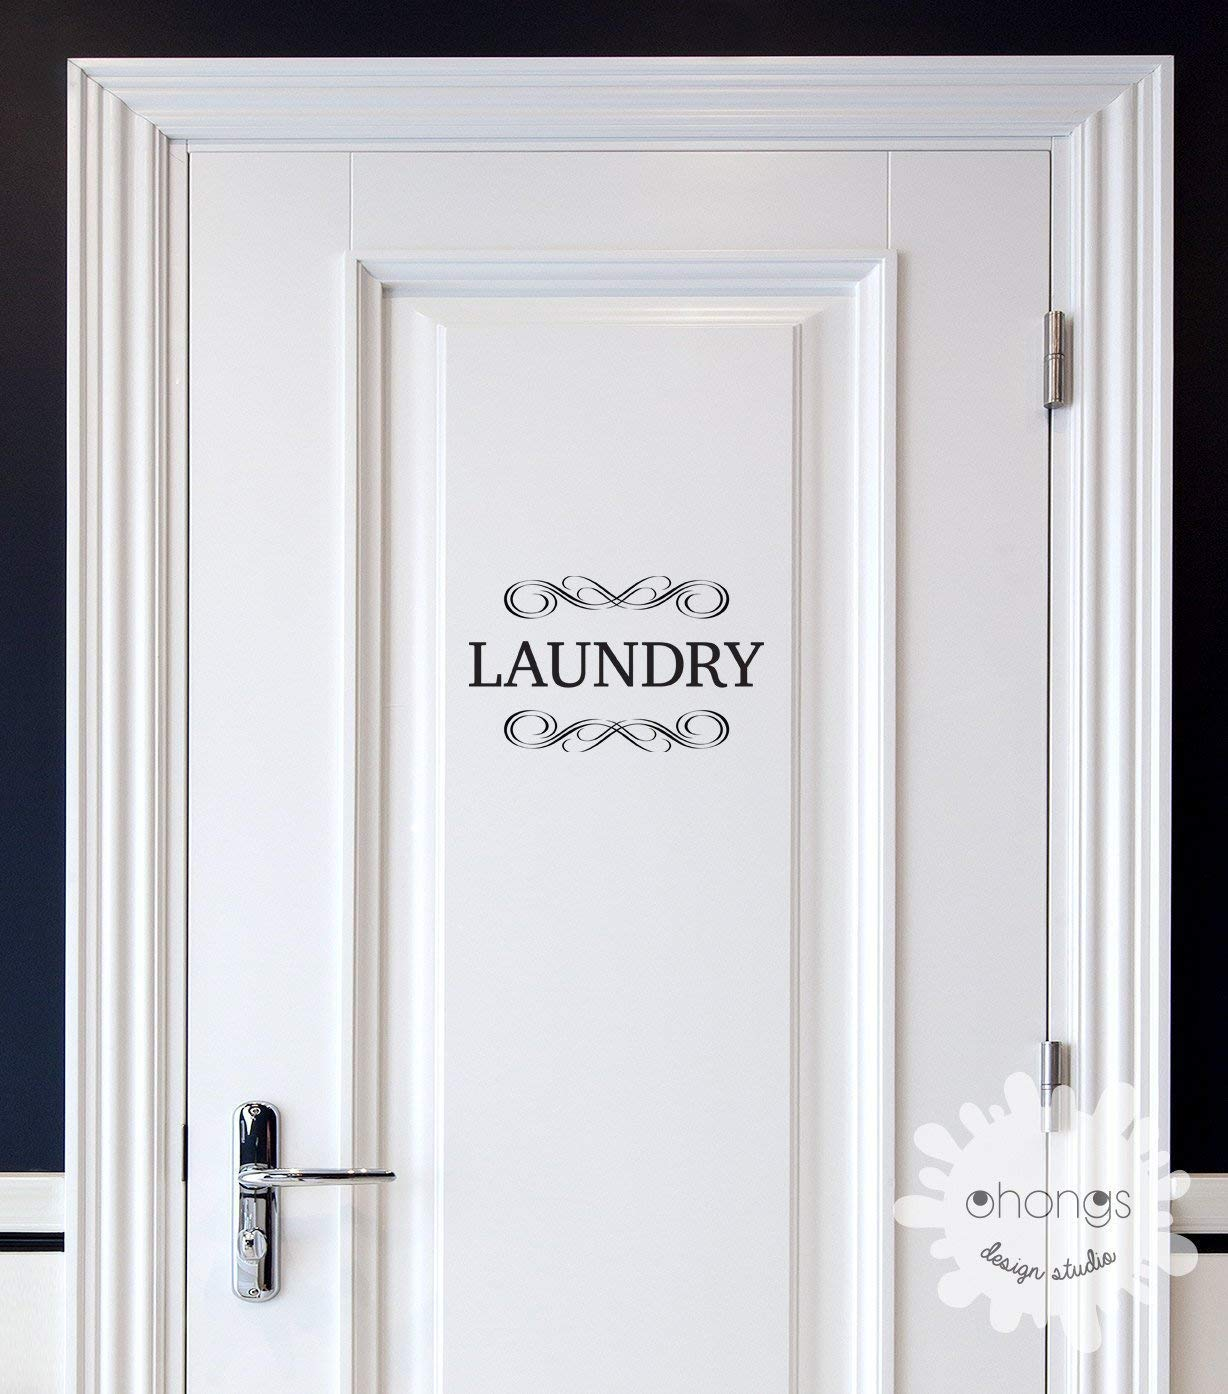 """2 Life essential items! They are basic but they could make your life easy and simple. These can be easily applied or removed, leaving no residue to your walls. * Picture is for reference only and may NOT accurately represent the actual size.  ★ FEATURES ★ size (11""""W) PANTRY : 11""""W X 7""""H LAUNDRY : 11""""W X 6.5""""H RESTROOM : 11""""W X 6.3""""H OFFICE : 11""""W X 7.5""""H PRIVATE : 11""""W X 7""""H  ★ INCLUDES ★ 1 door decal Installation instructions Free Test Decals  ★ DESCRIPTION ★ Removable Wall Vinyl Matte Finish ( except gold, silver, copper. They are metallic color. ) Can be applied to windows or vehicle 3 year outdoor durability  ★ CUSTOMIZATION ★ Other style : Please leave your details in the box Please contact us for: Different sizes to fit your space"""